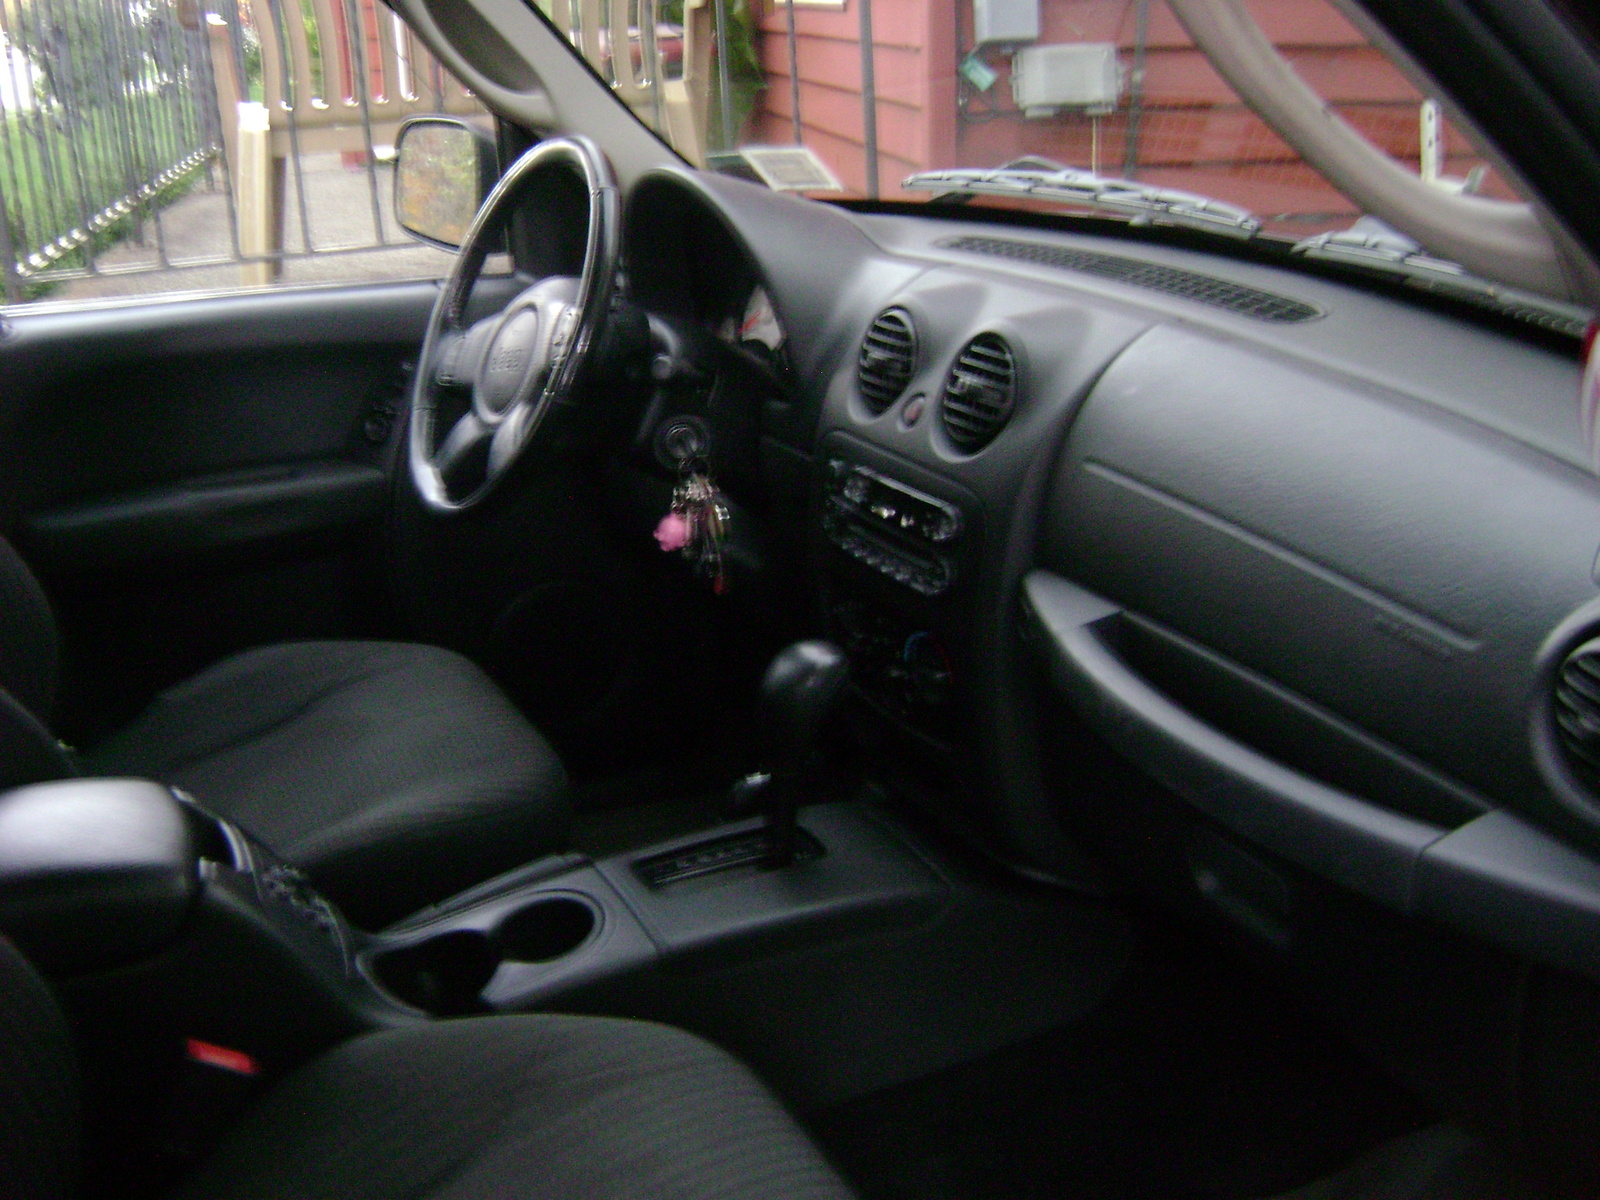 2004 Jeep Liberty Sport >> 2004 Jeep Liberty - Interior Pictures - CarGurus